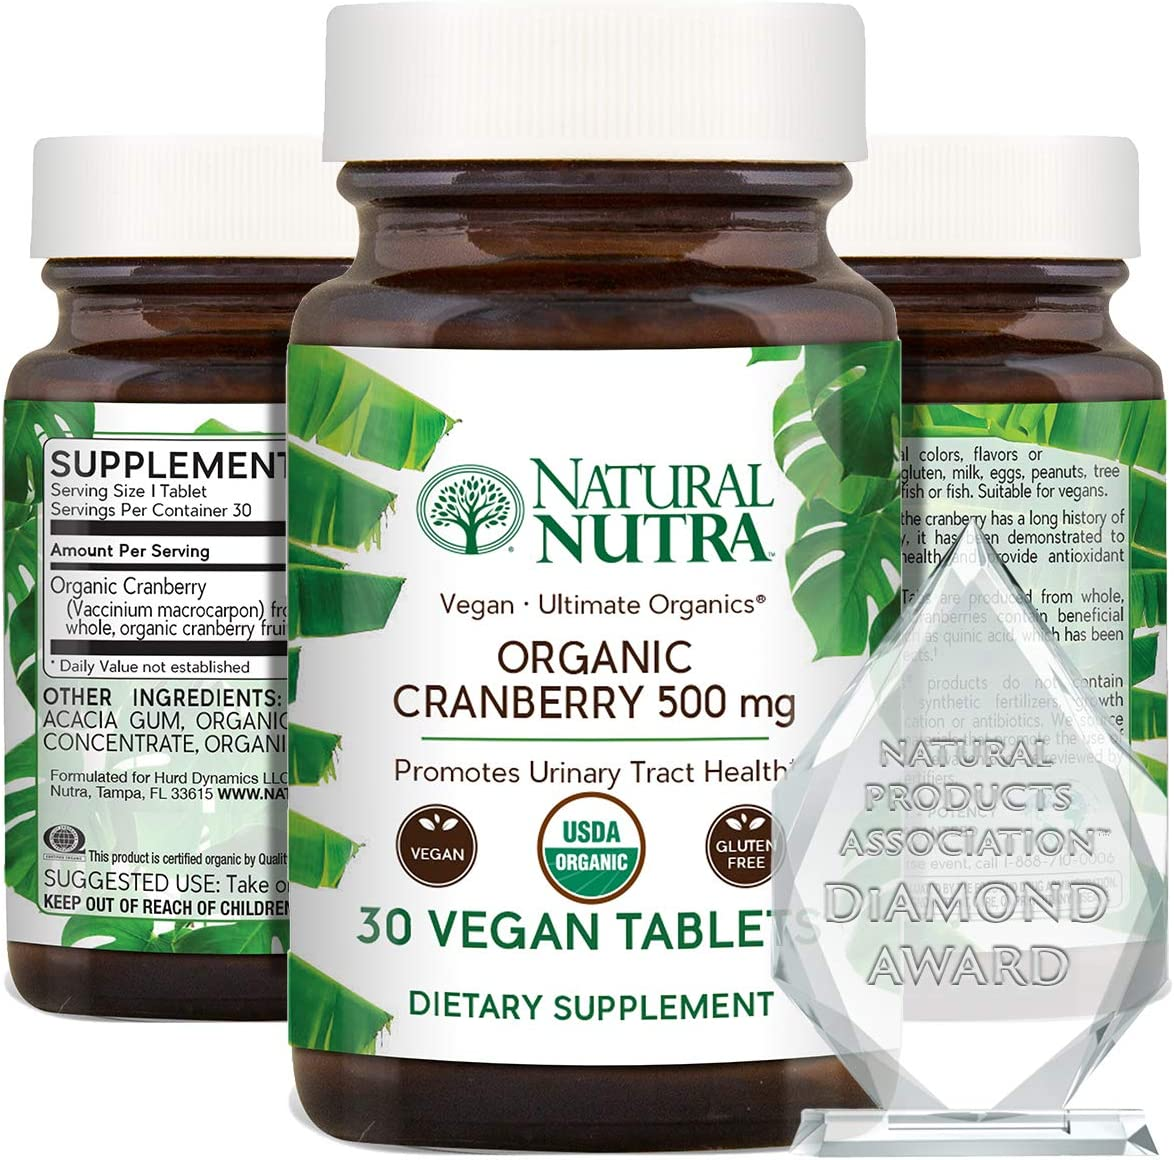 Natural Nutra Organic Cranberry Extract Supplement, Vegan and Vegetarian, Pills for Kidney Cleanse, UTI Relief, Inflammation and Antioxidant Support, 30 Tablets, One Month Supply